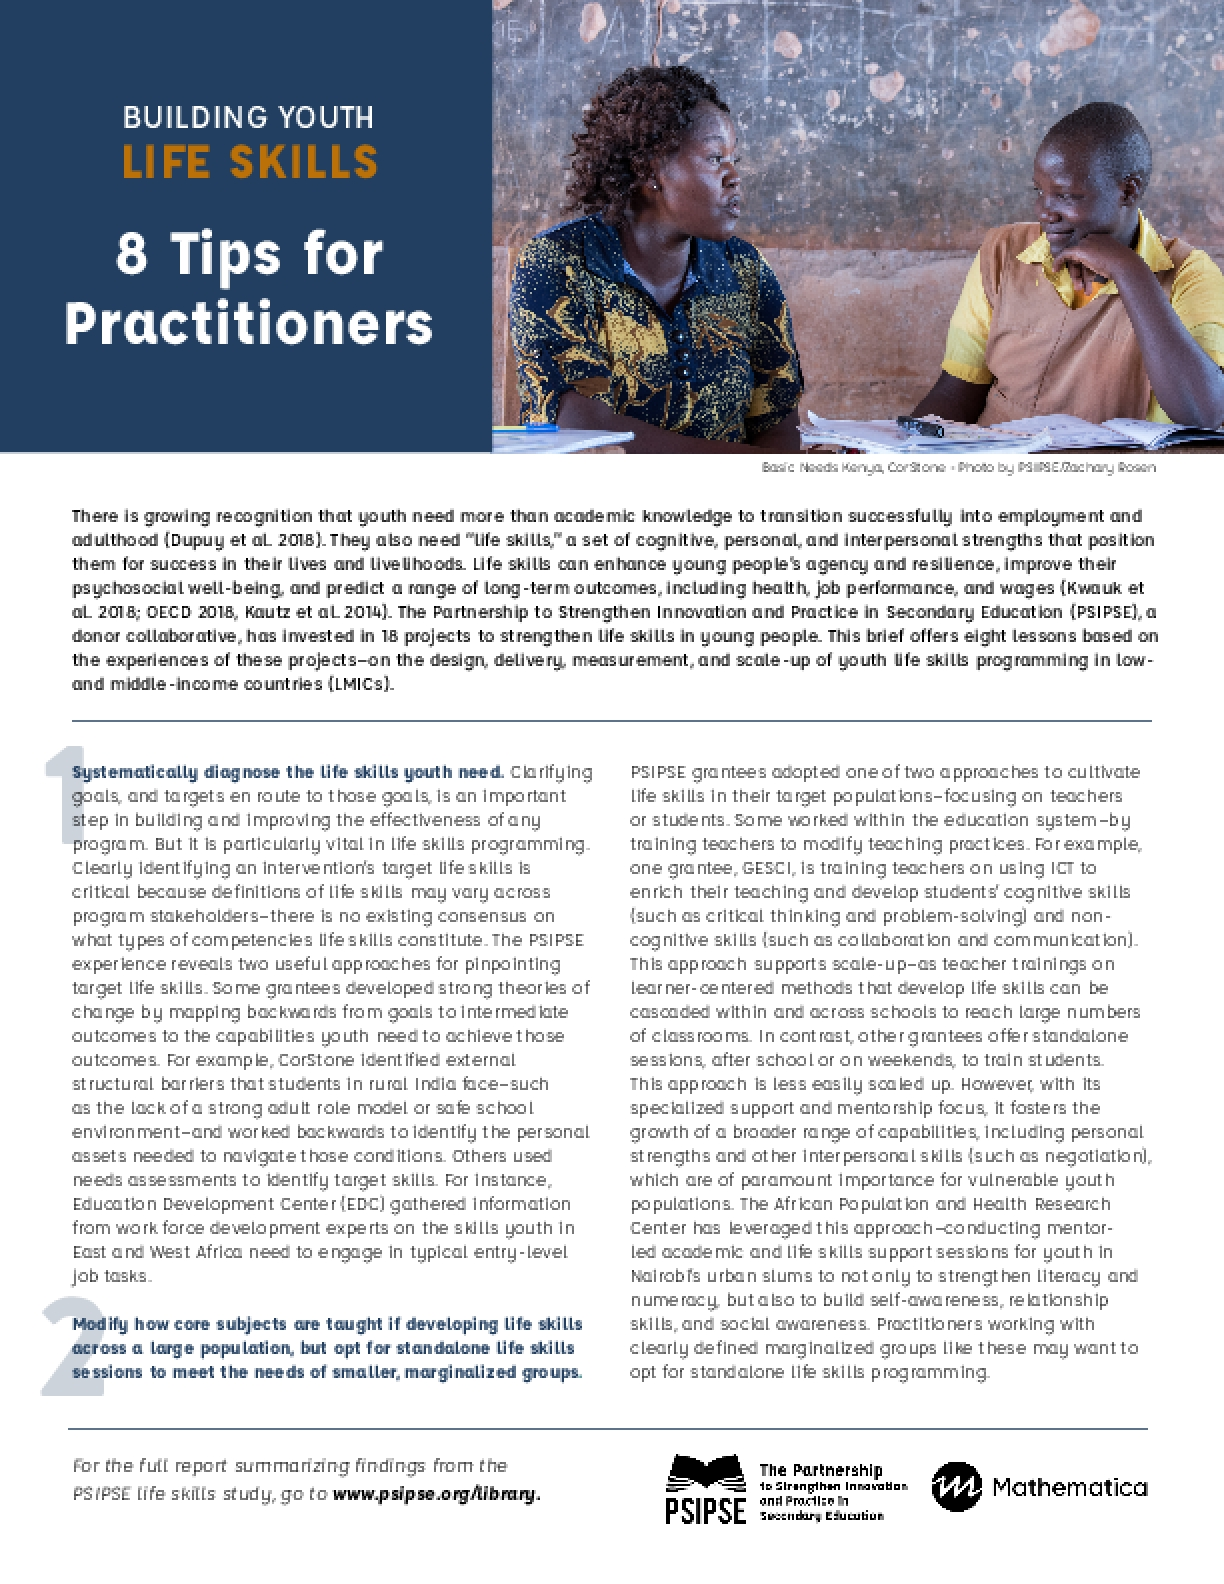 Building Youth Life Skills: 8 Tips for Practitioners